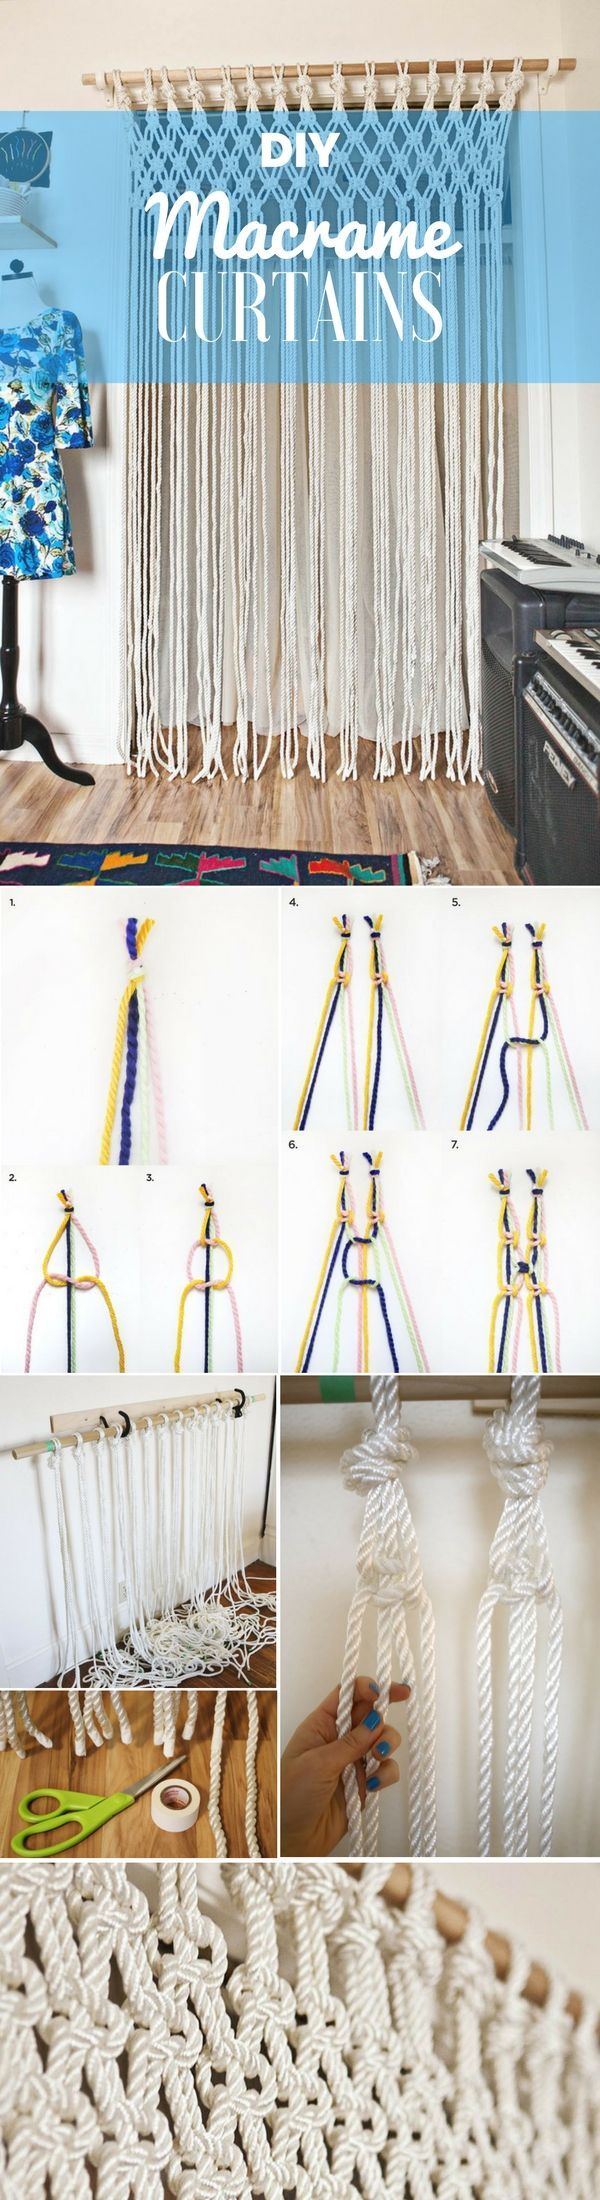 Check out how to easily make your own DIY Macrame Curtains @istandarddesign